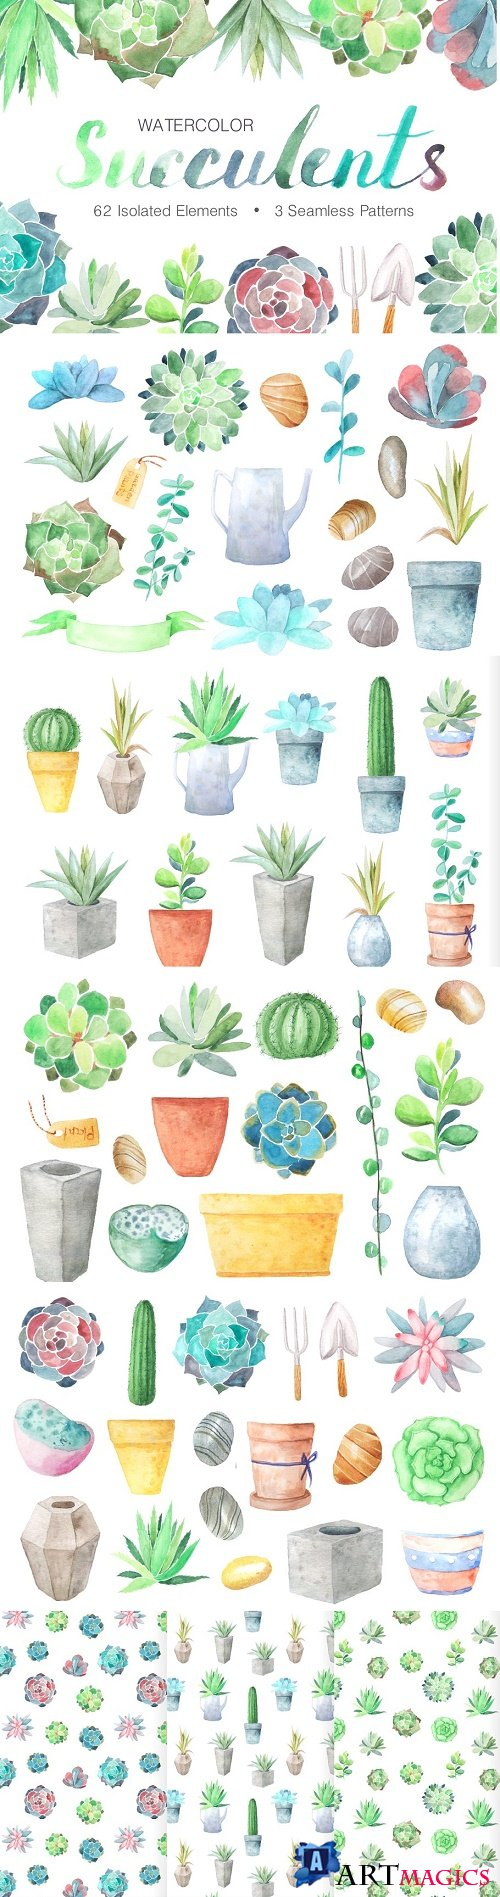 Watercolor Succulents Collection - 1254088